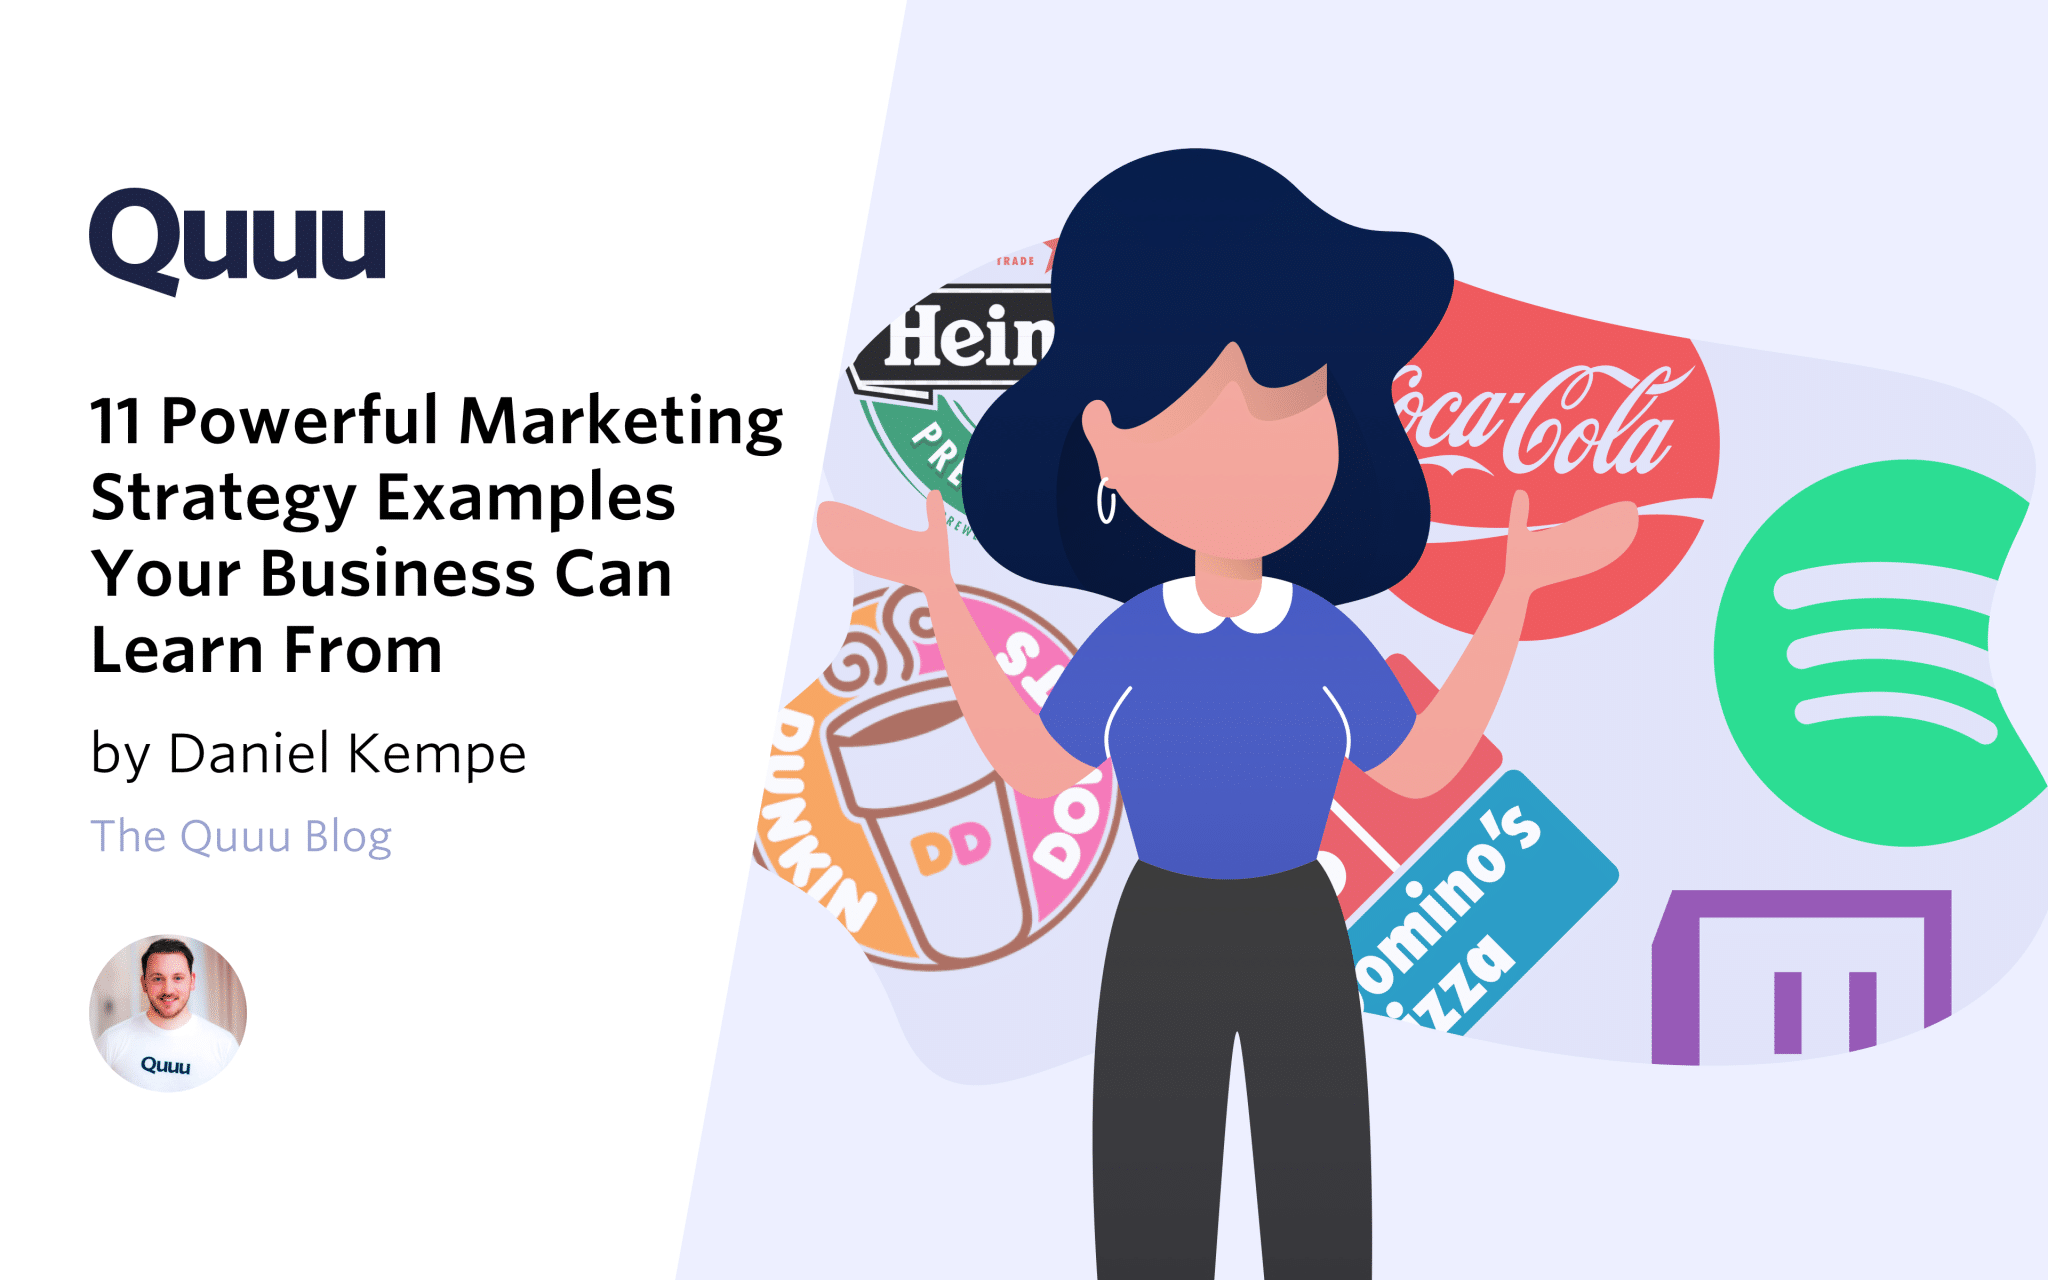 11 Powerful Marketing Strategy Examples Your Business Can Learn From